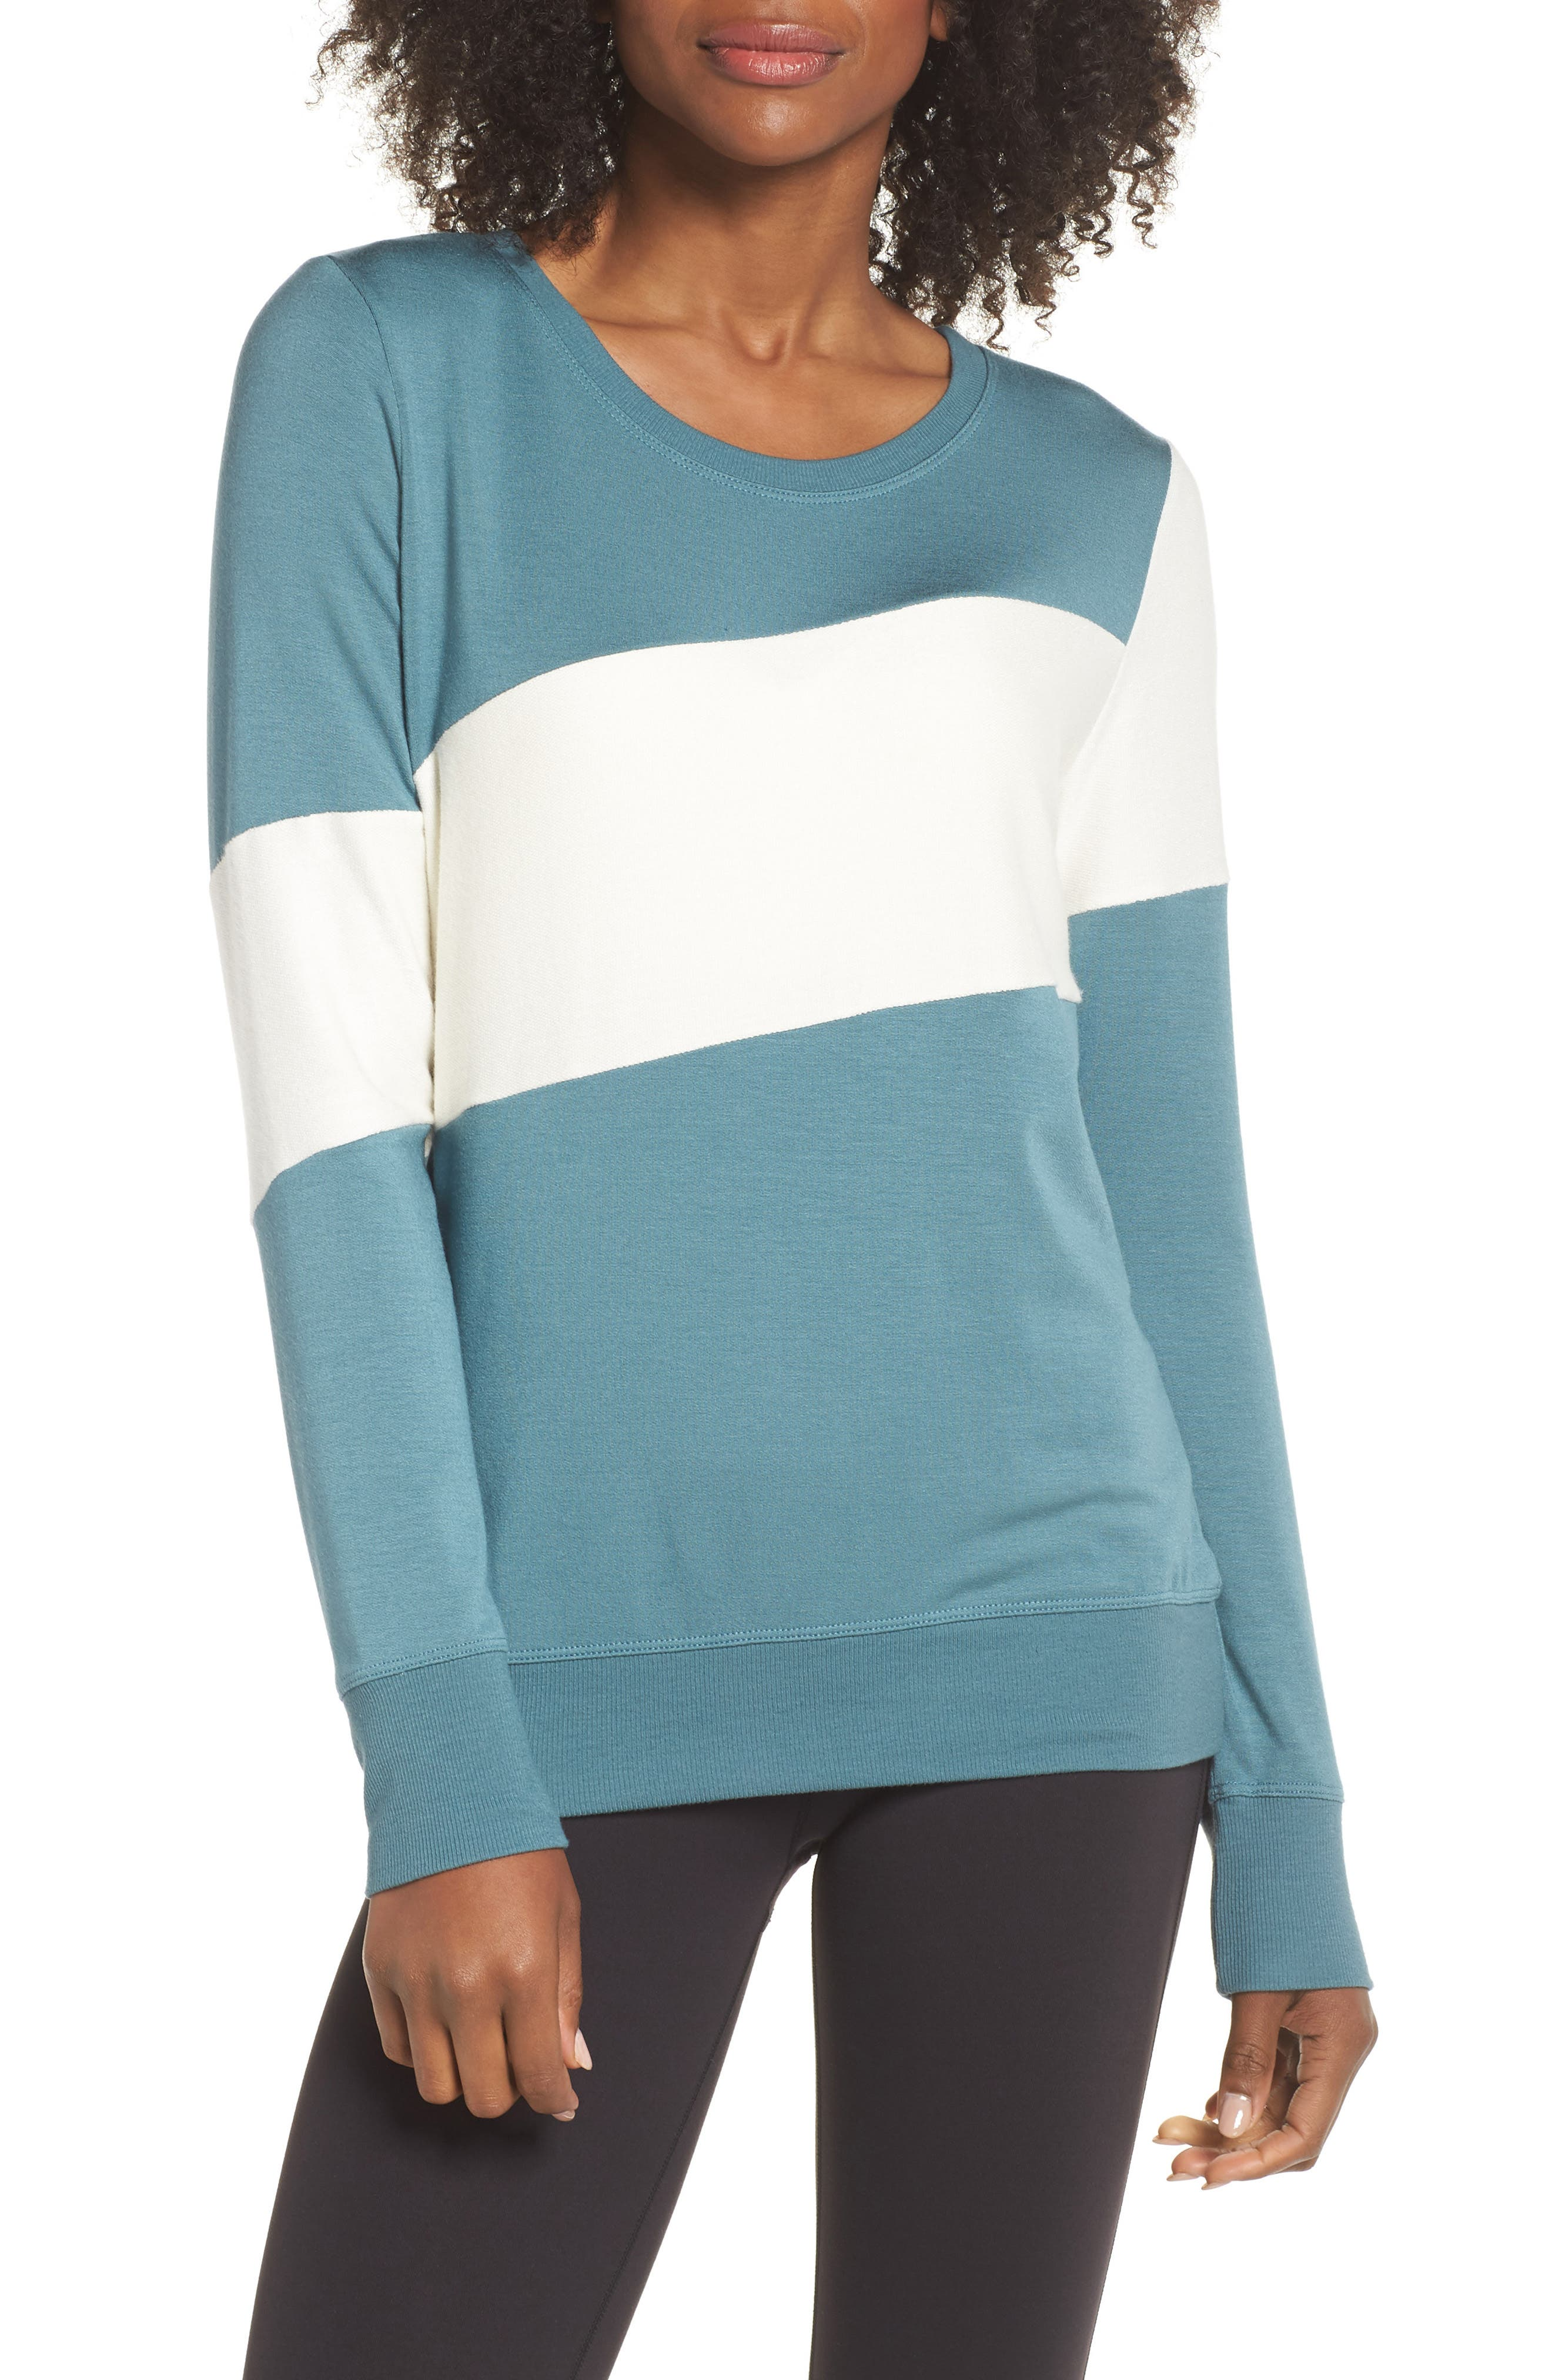 Ramp Sweatshirt,                             Main thumbnail 1, color,                             BLUE SURF/ OFF WHITE